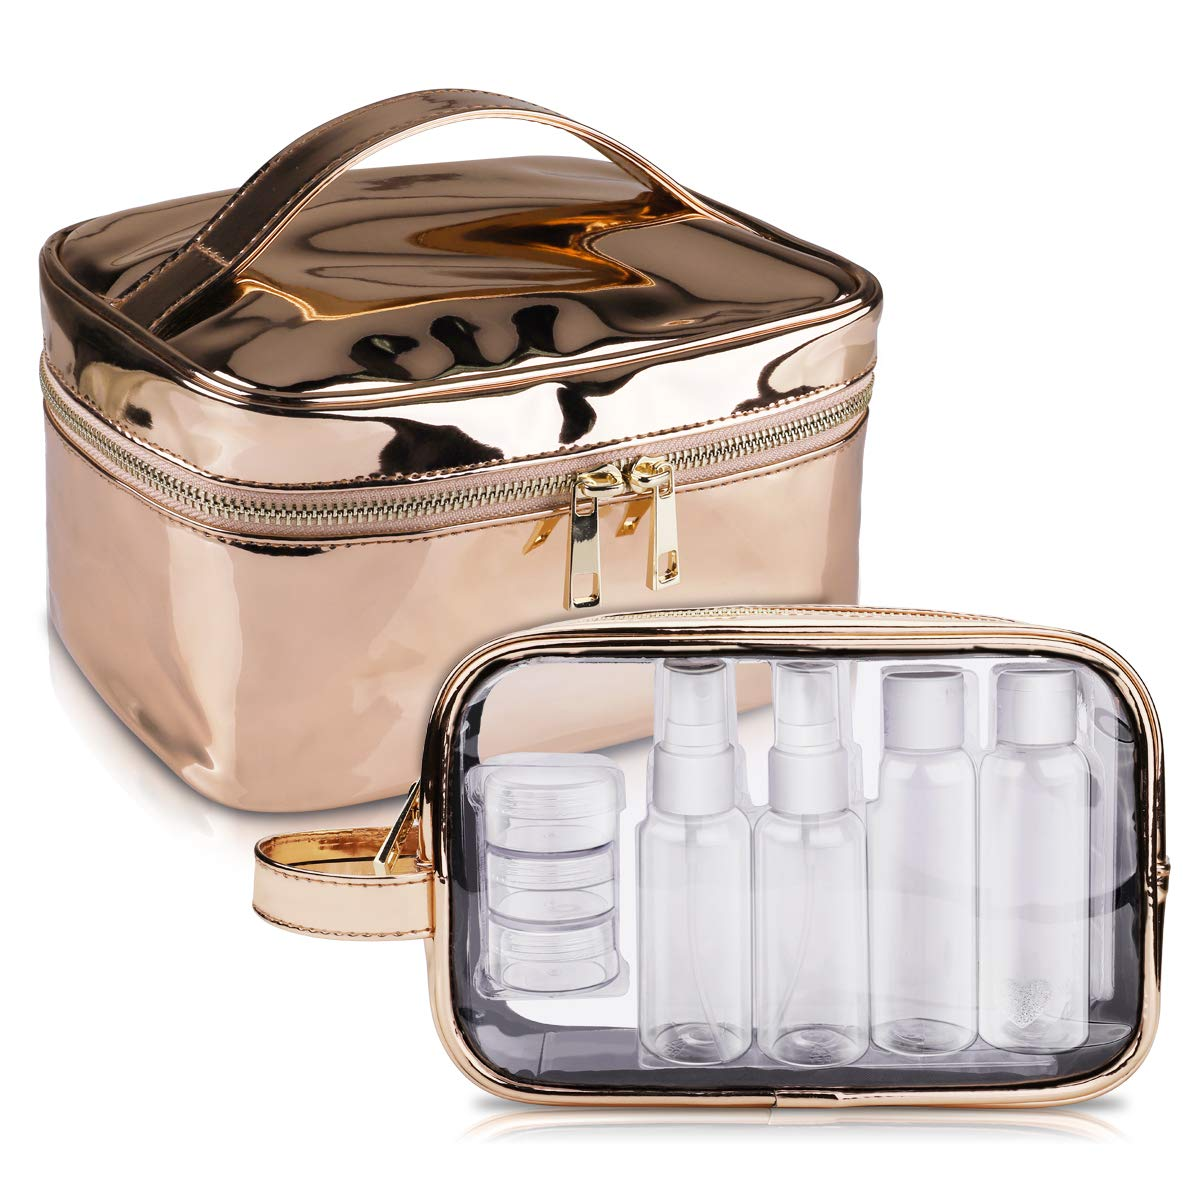 Beautiful Cosmetic train case